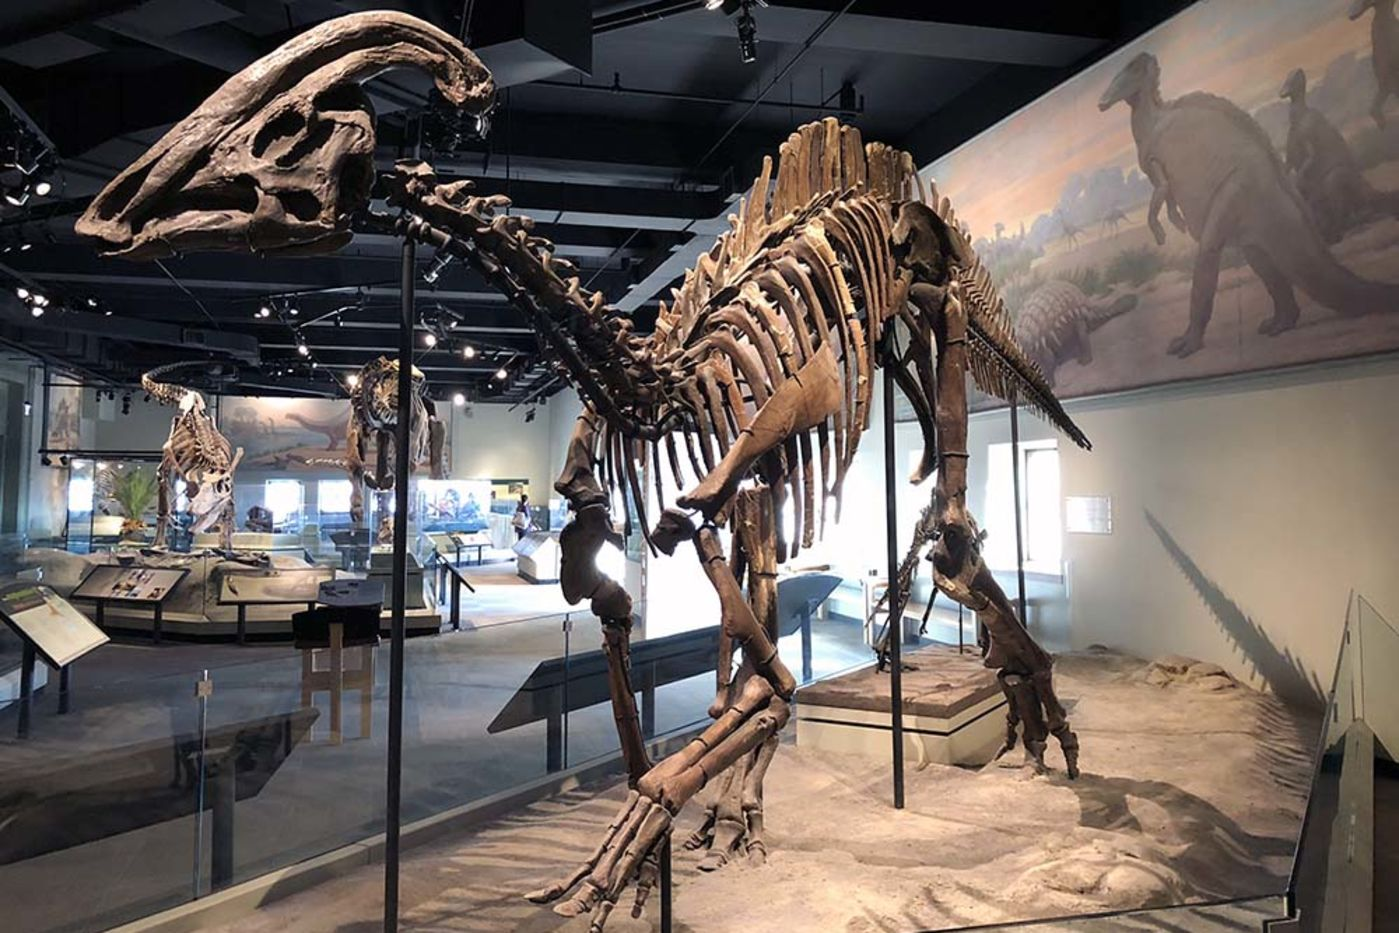 A dinosaur skeleton with a frill or fan on the top of its head, located in a museum display with other dinosaurs in the background.